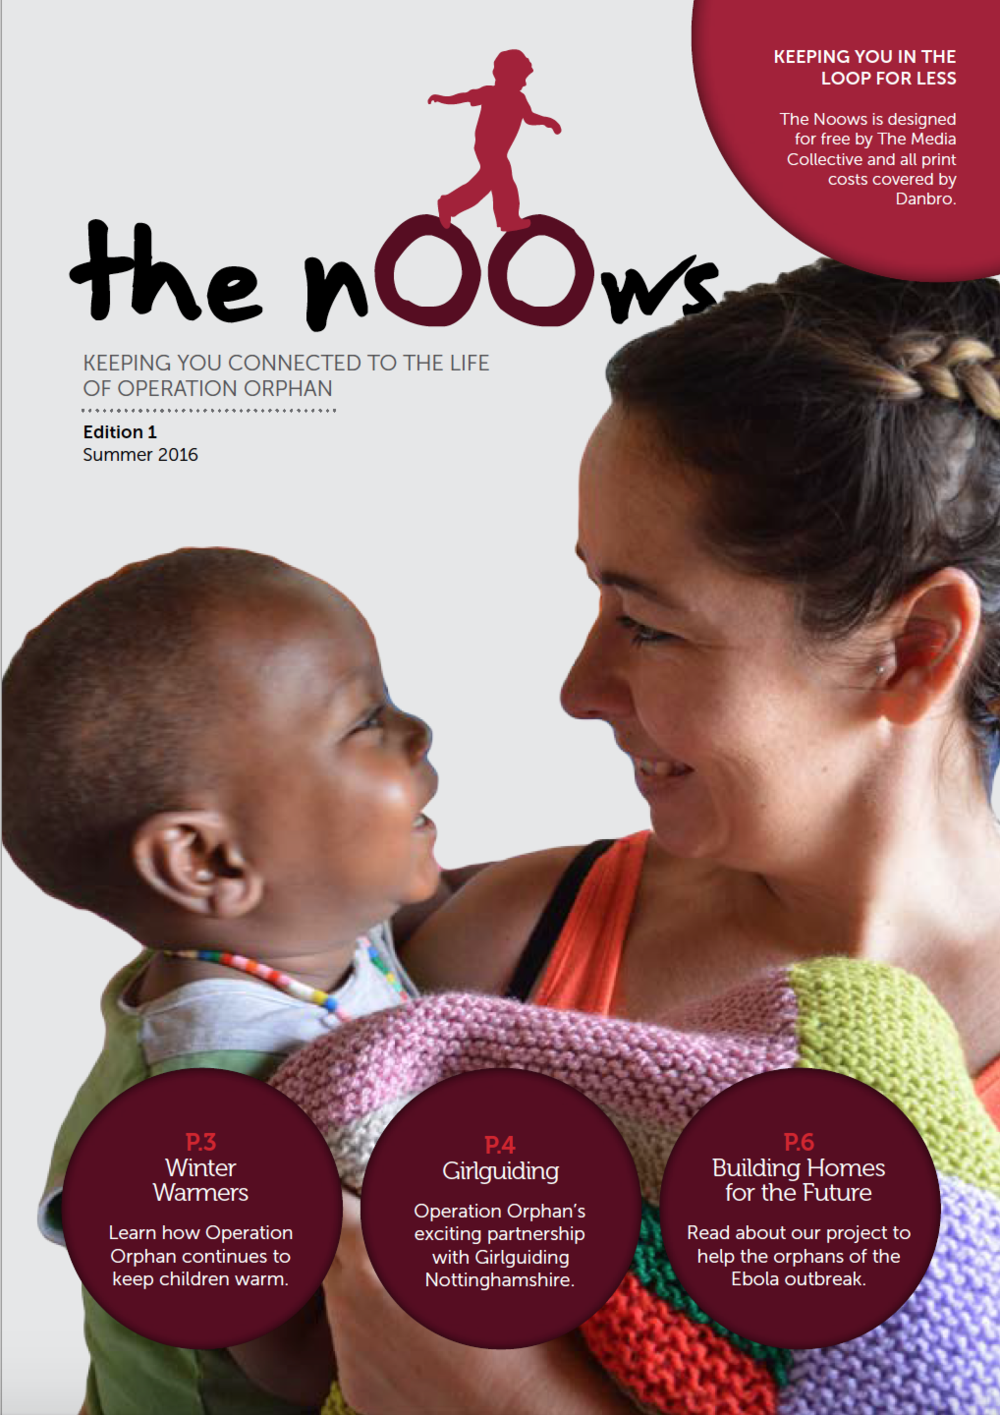 The Noows Edition 1